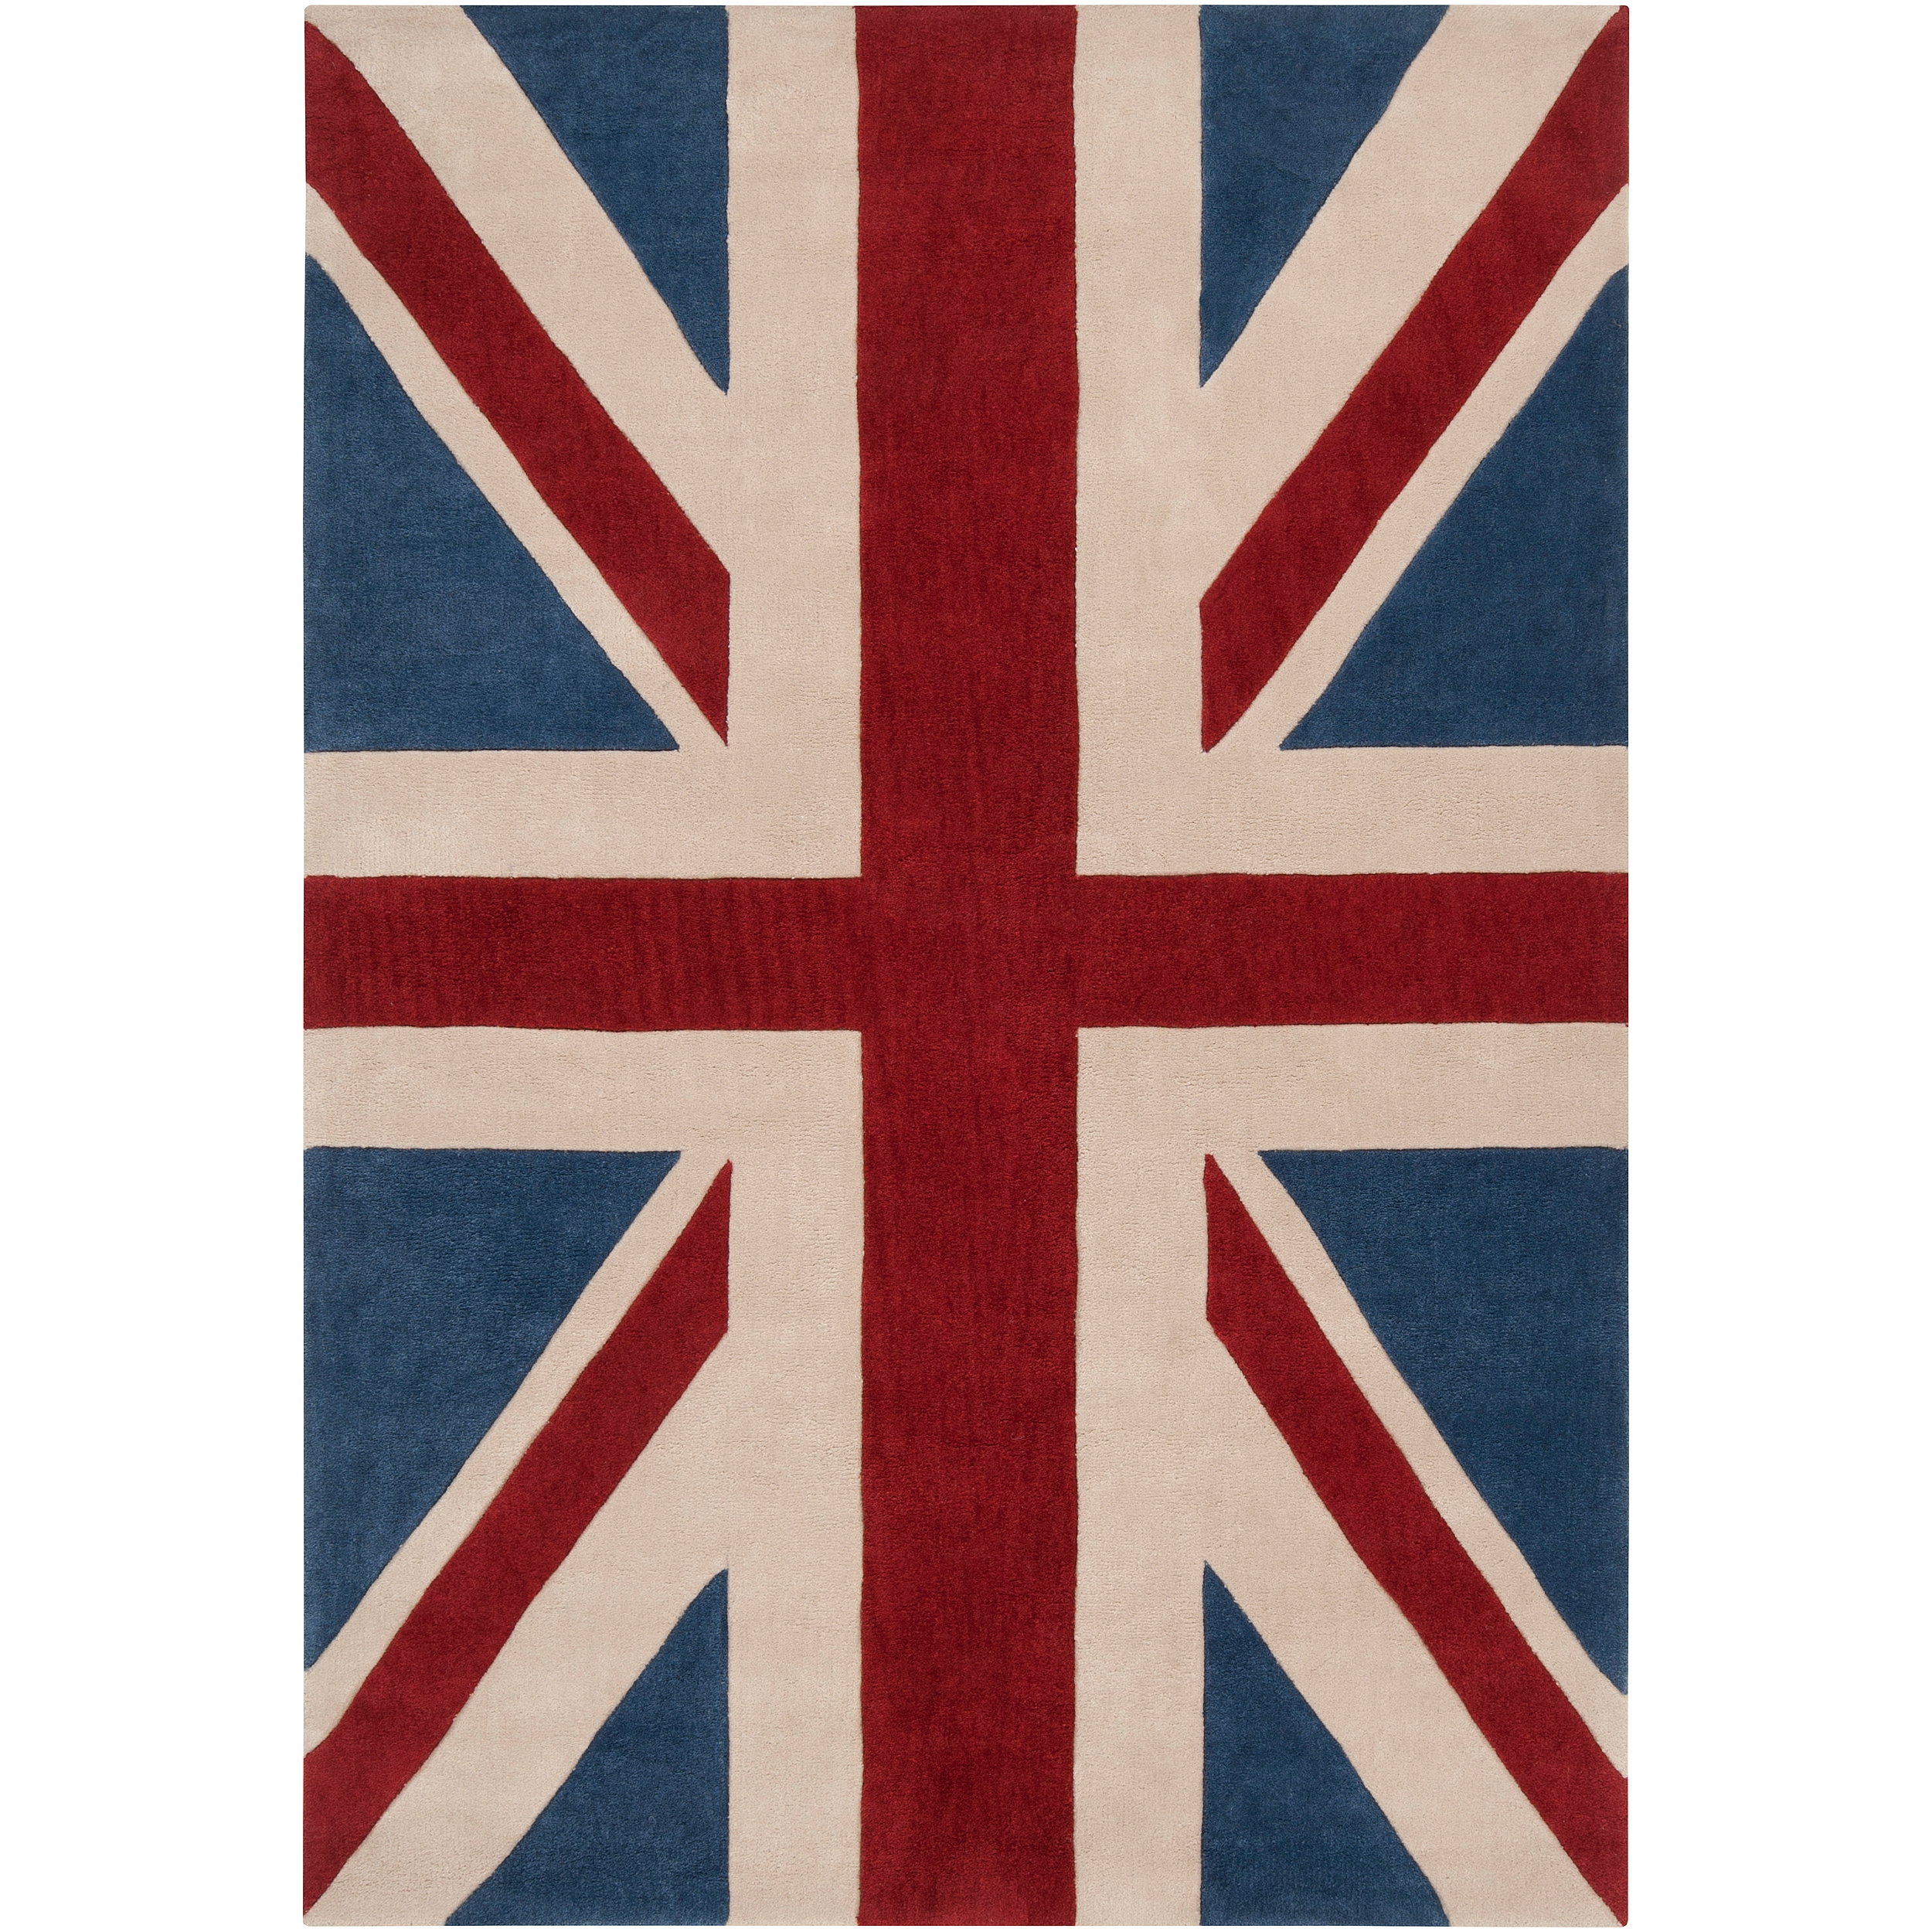 Home Design Ot75bk6x9 Eorc Union Jack British Flag Rug In In British Flag Rugs (Image 7 of 15)